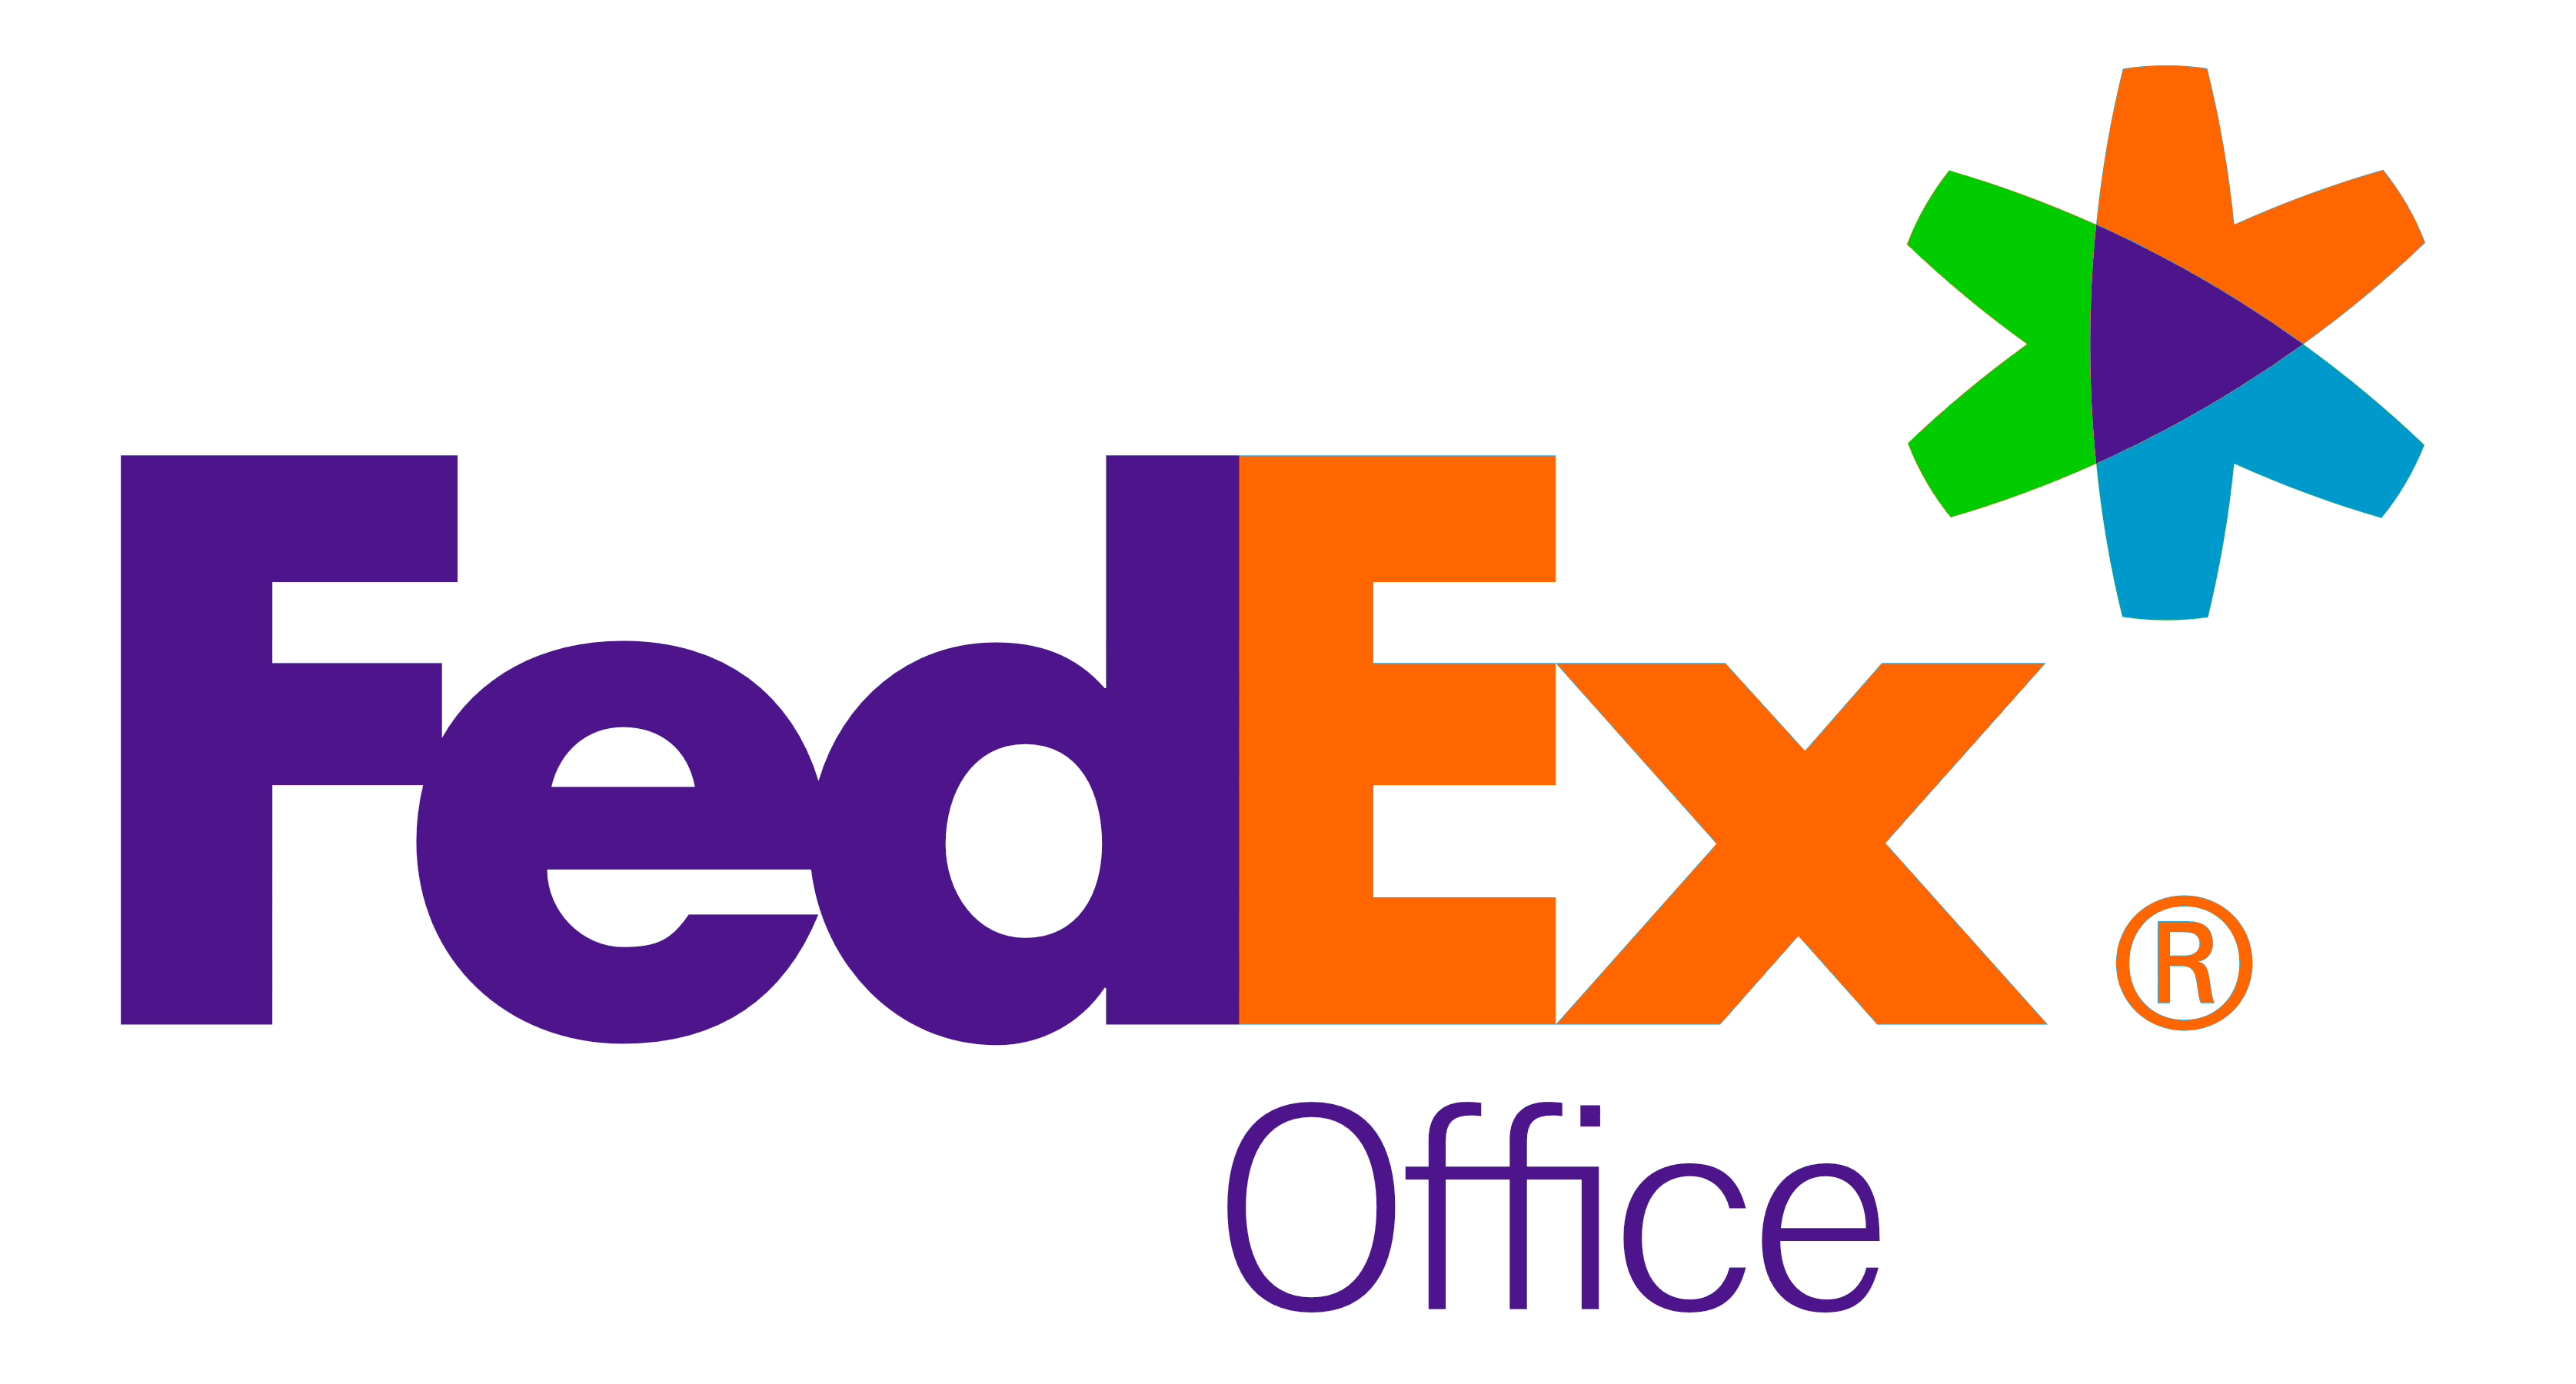 Fedex Office PNG